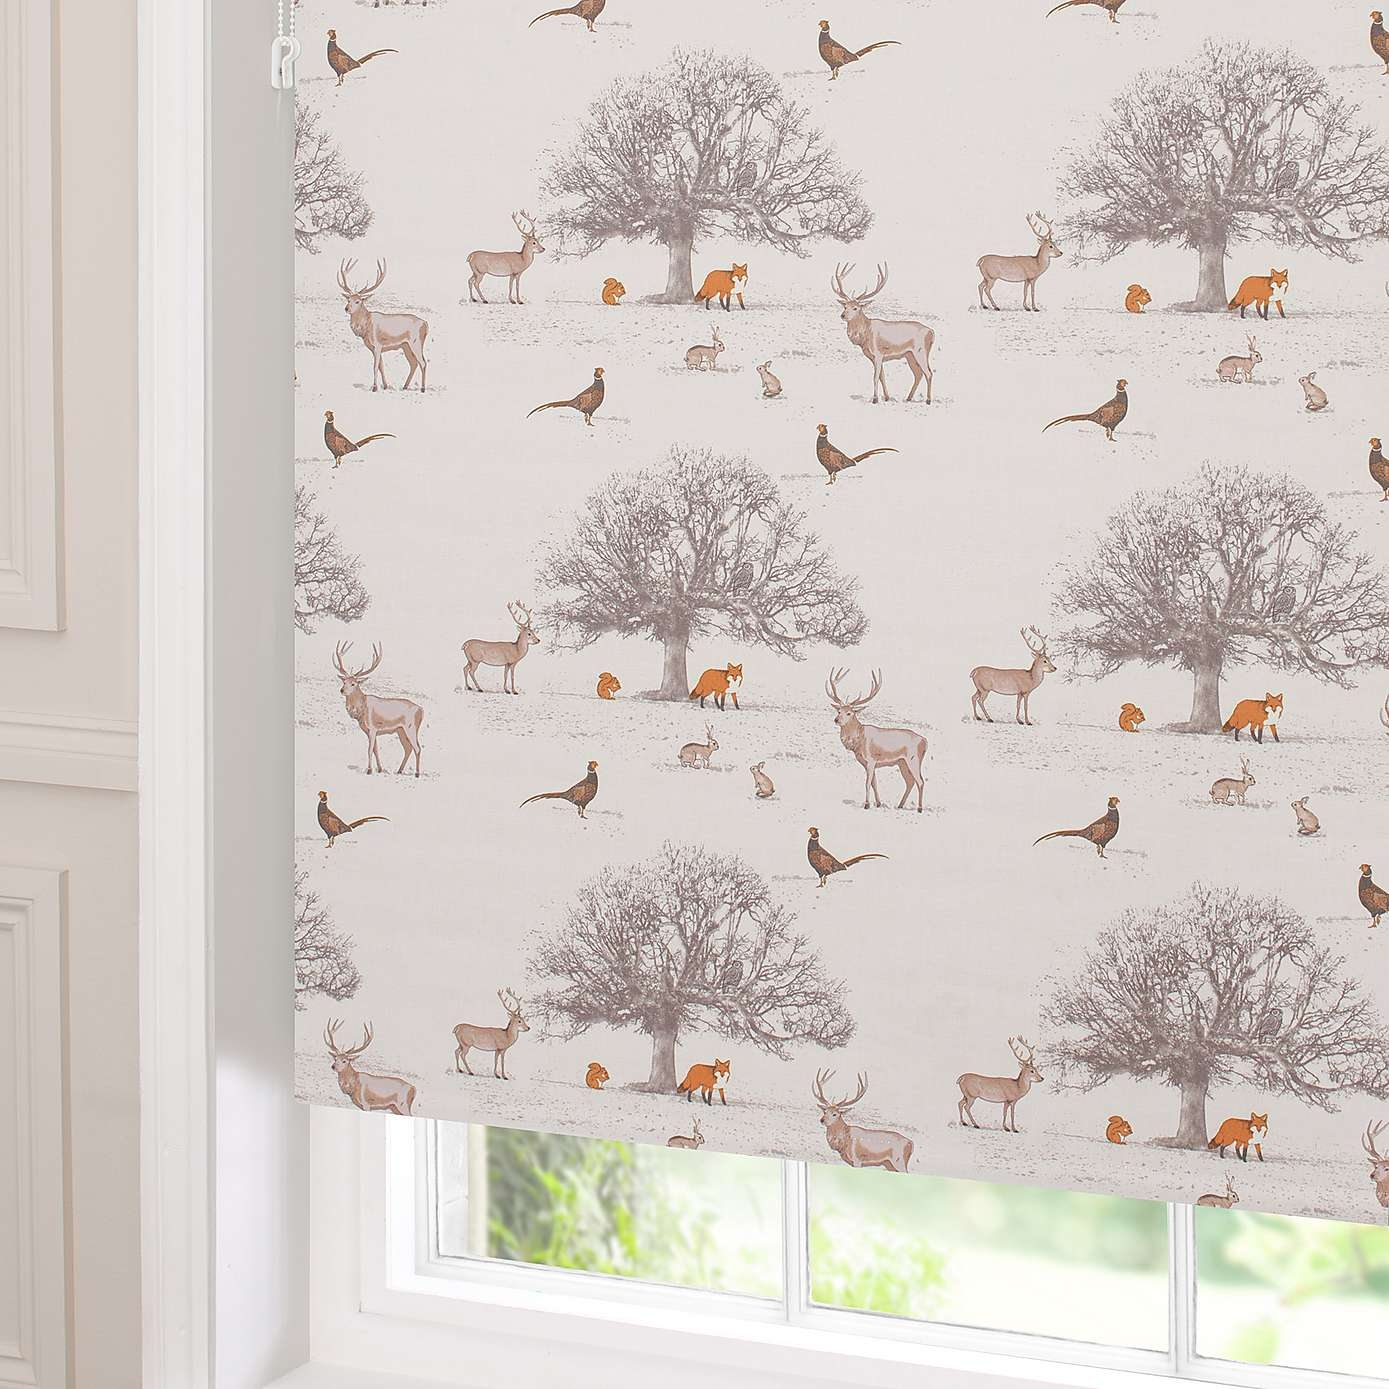 Tatton Blackout Roller Blind Dunelm Curtains Blinds In Pattern Roller Blinds (Image 15 of 15)